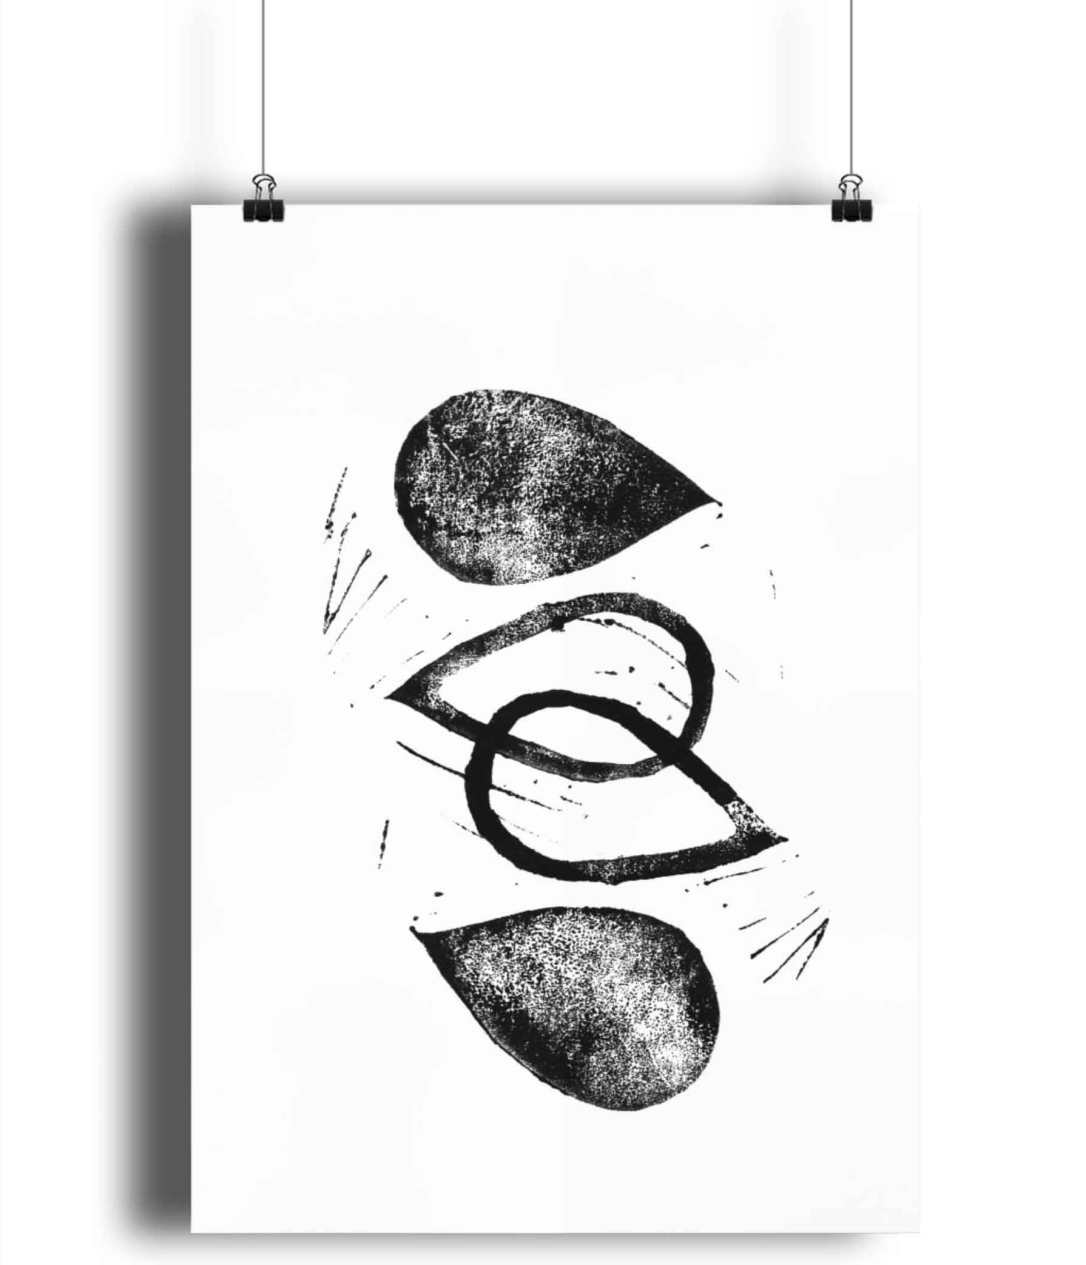 abstract black and white art print